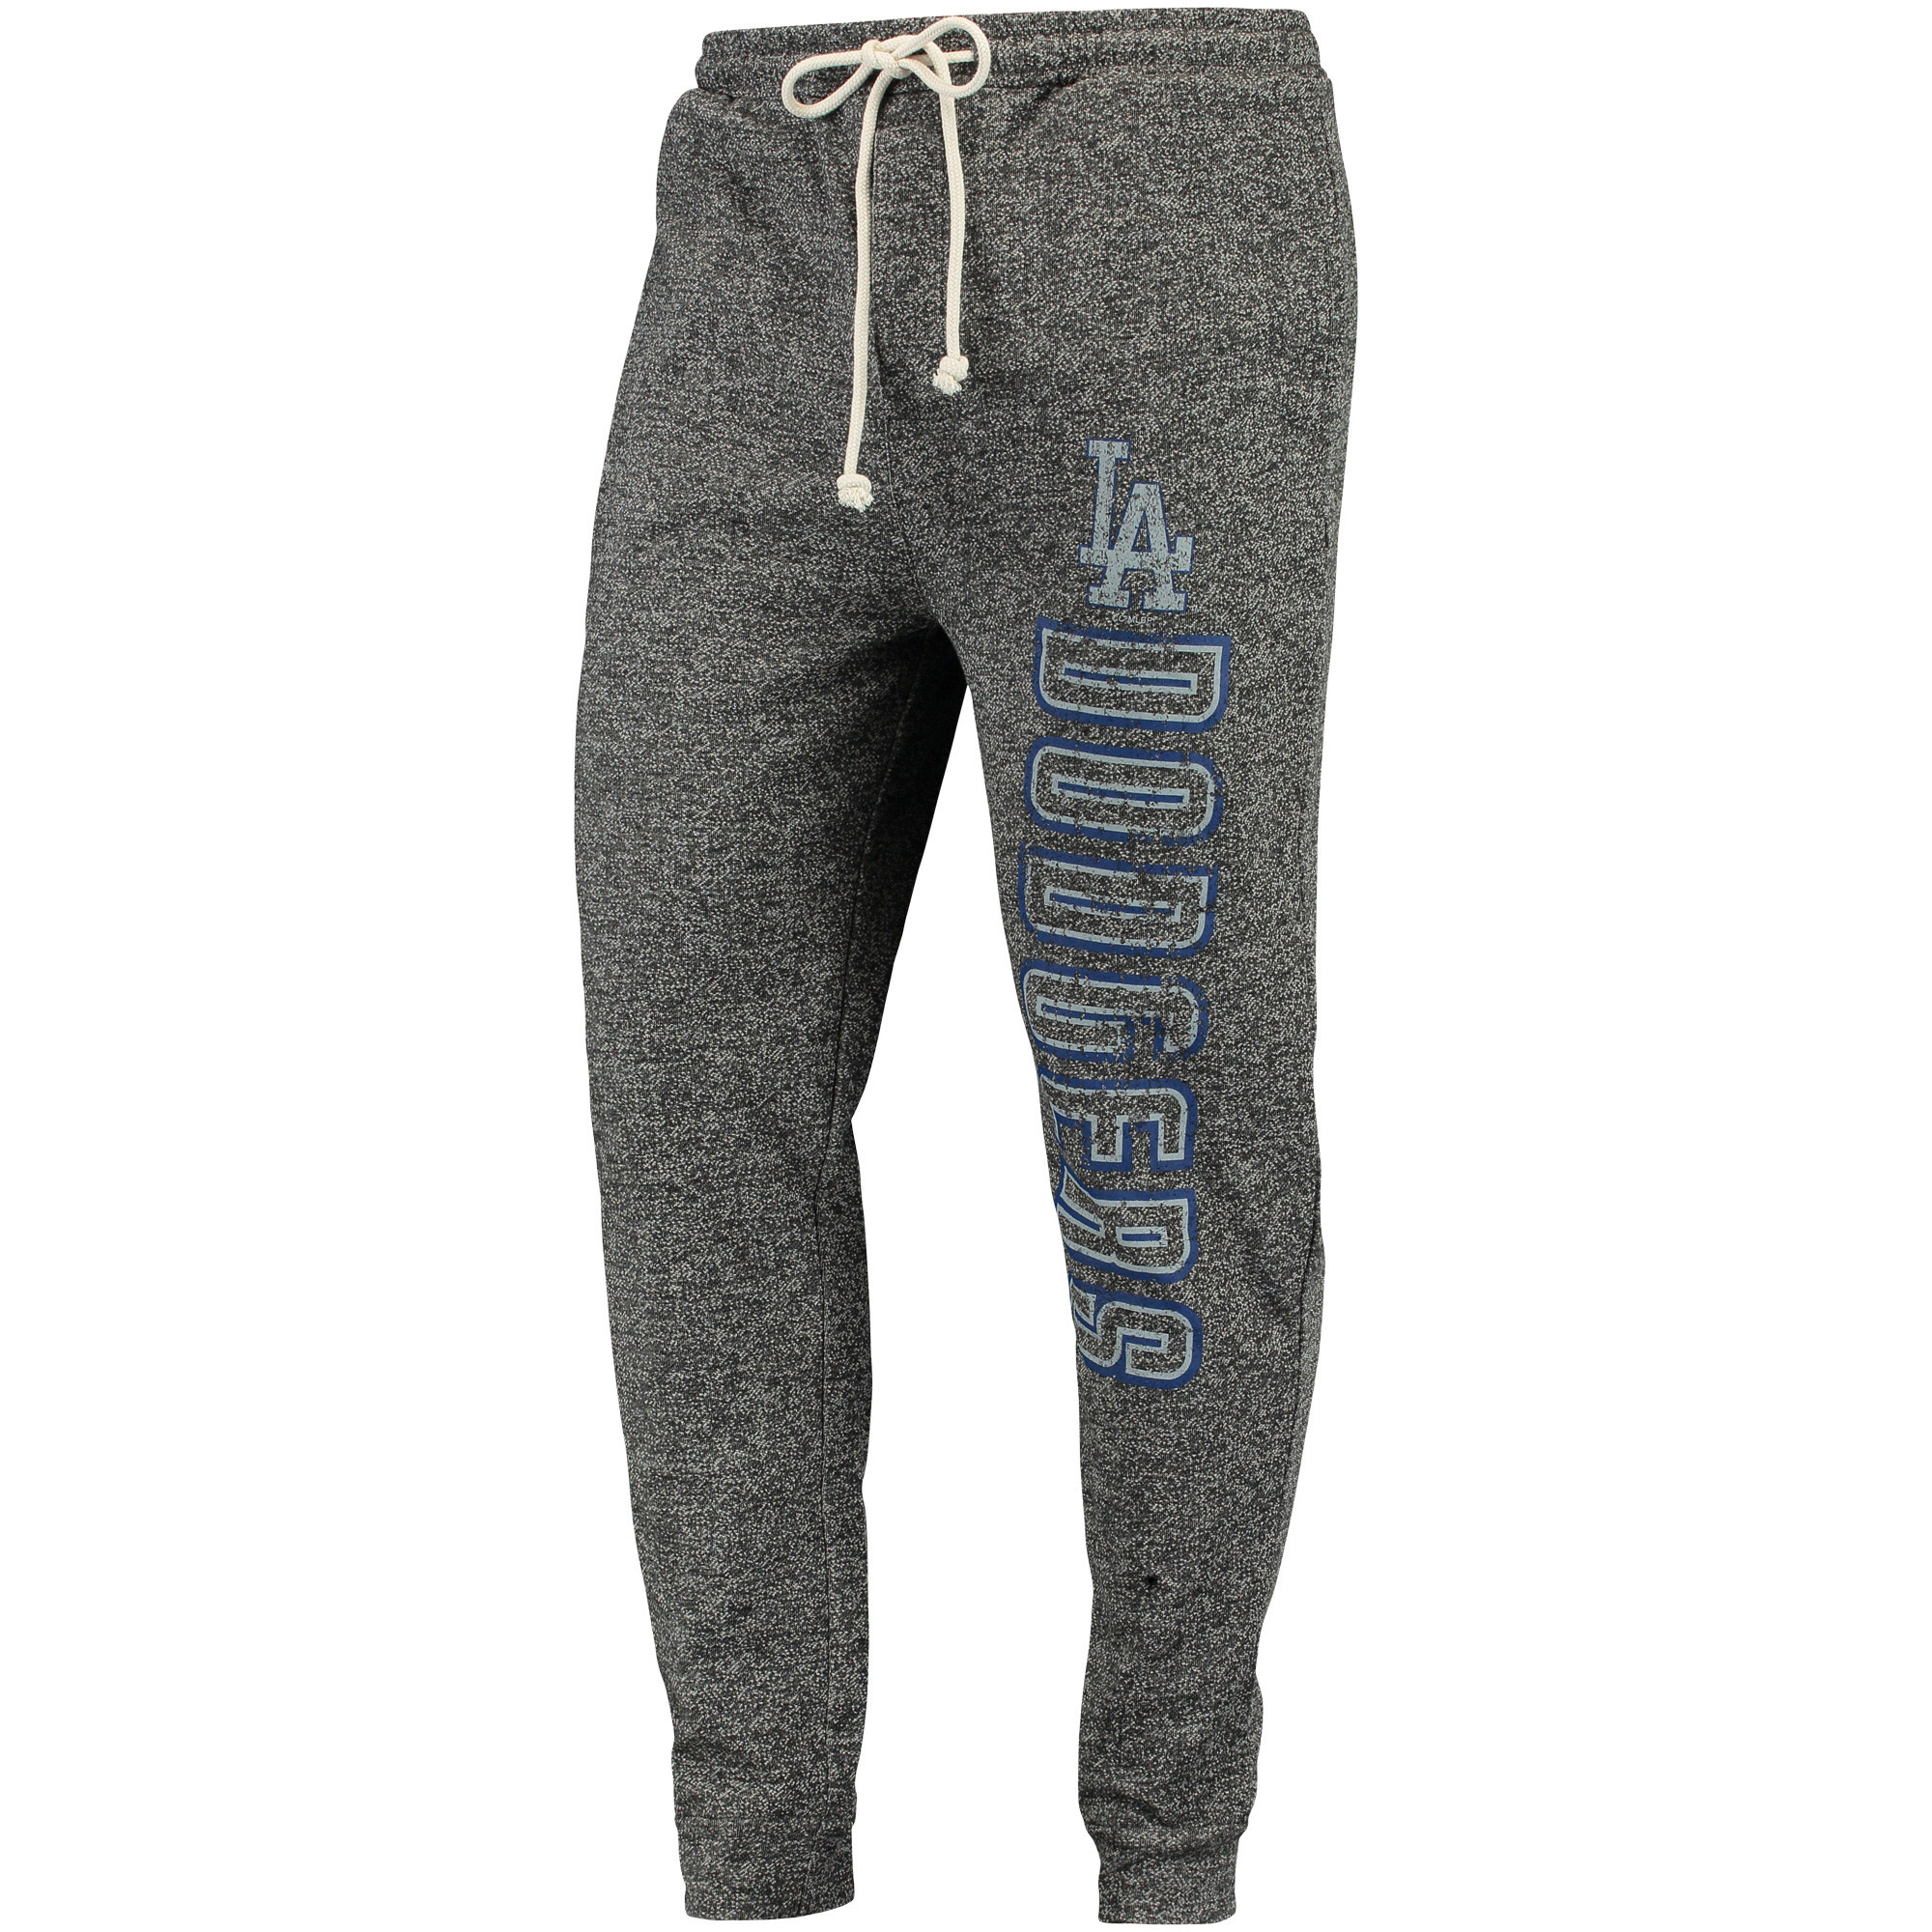 Los Angeles Dodgers Concepts Sport Pinpoint French Terry Cuffed Pant - Charcoal